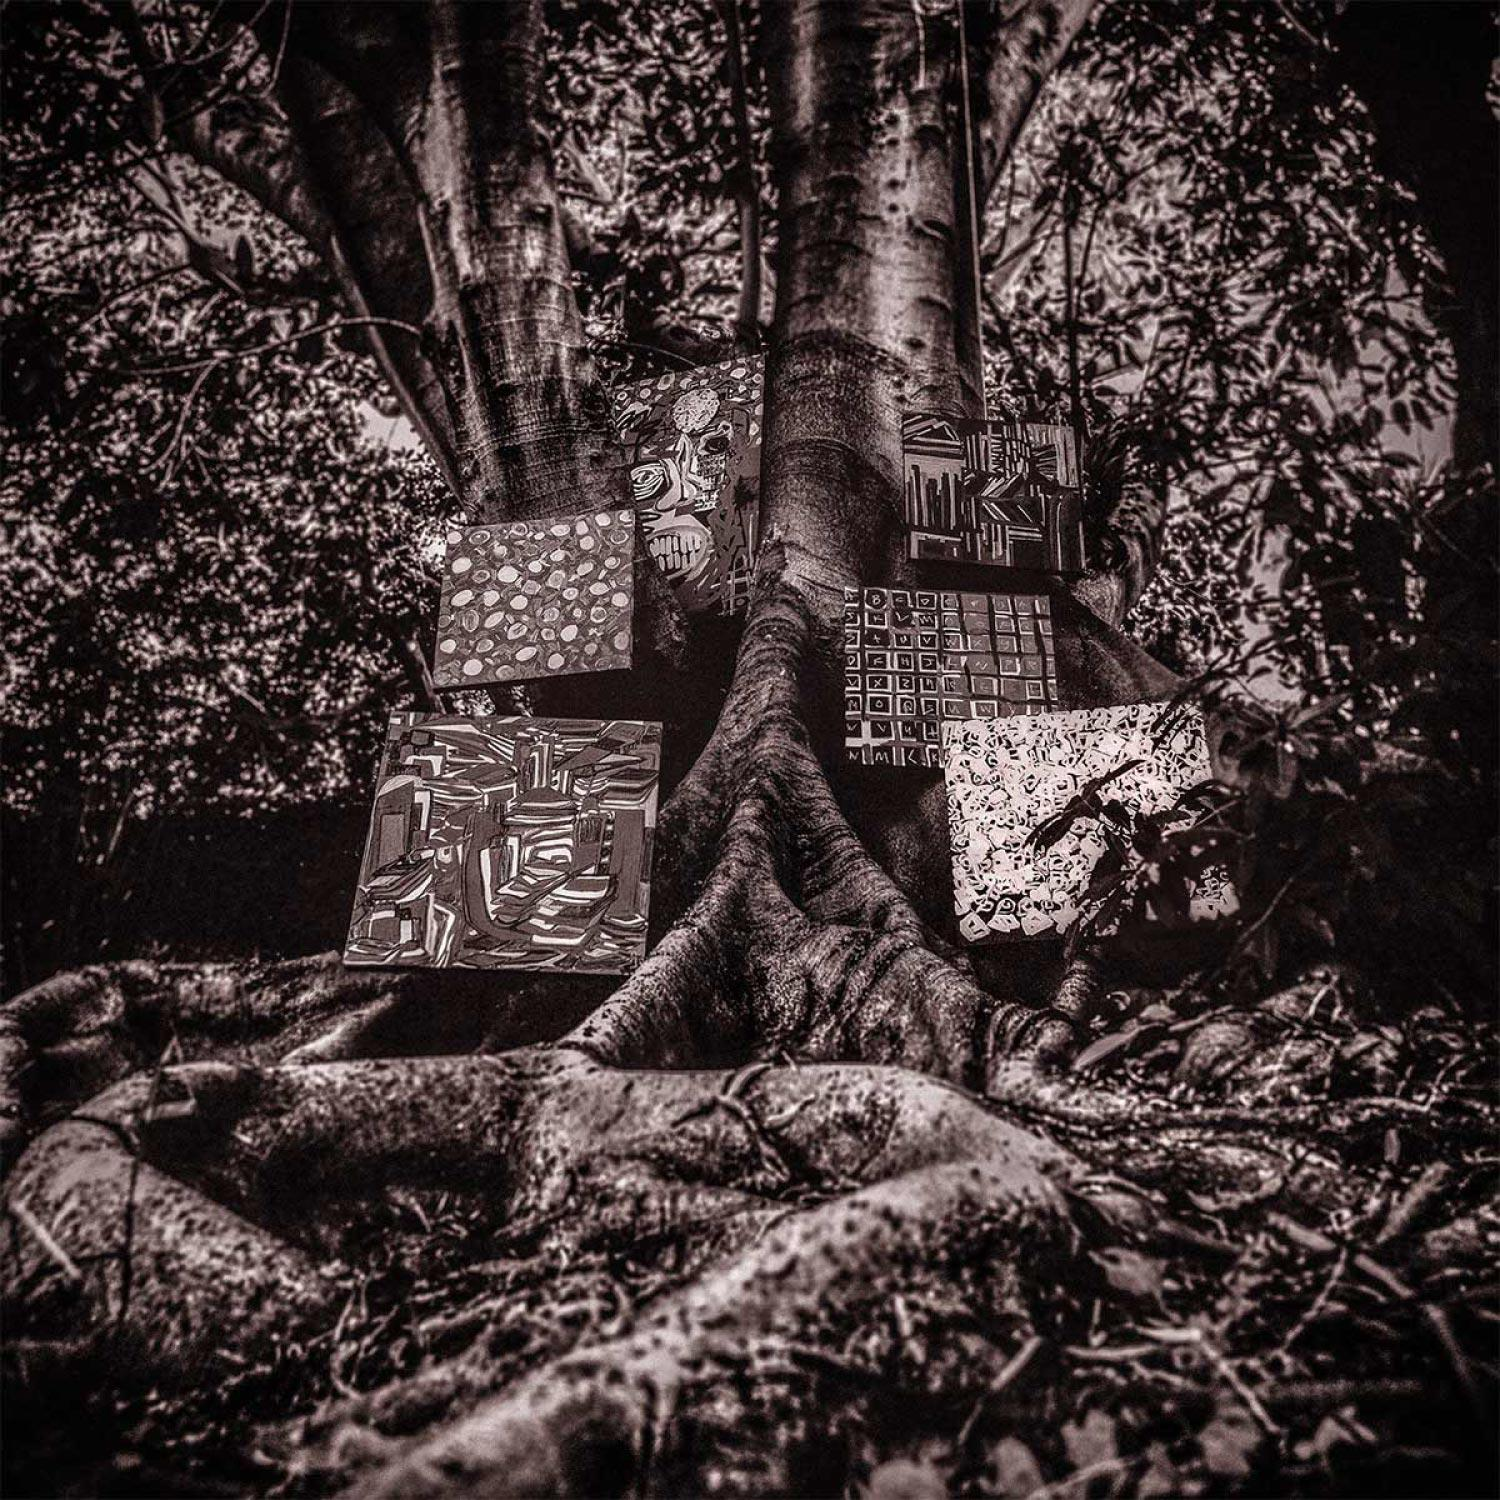 Harmony of Difference by Kamasi Washington